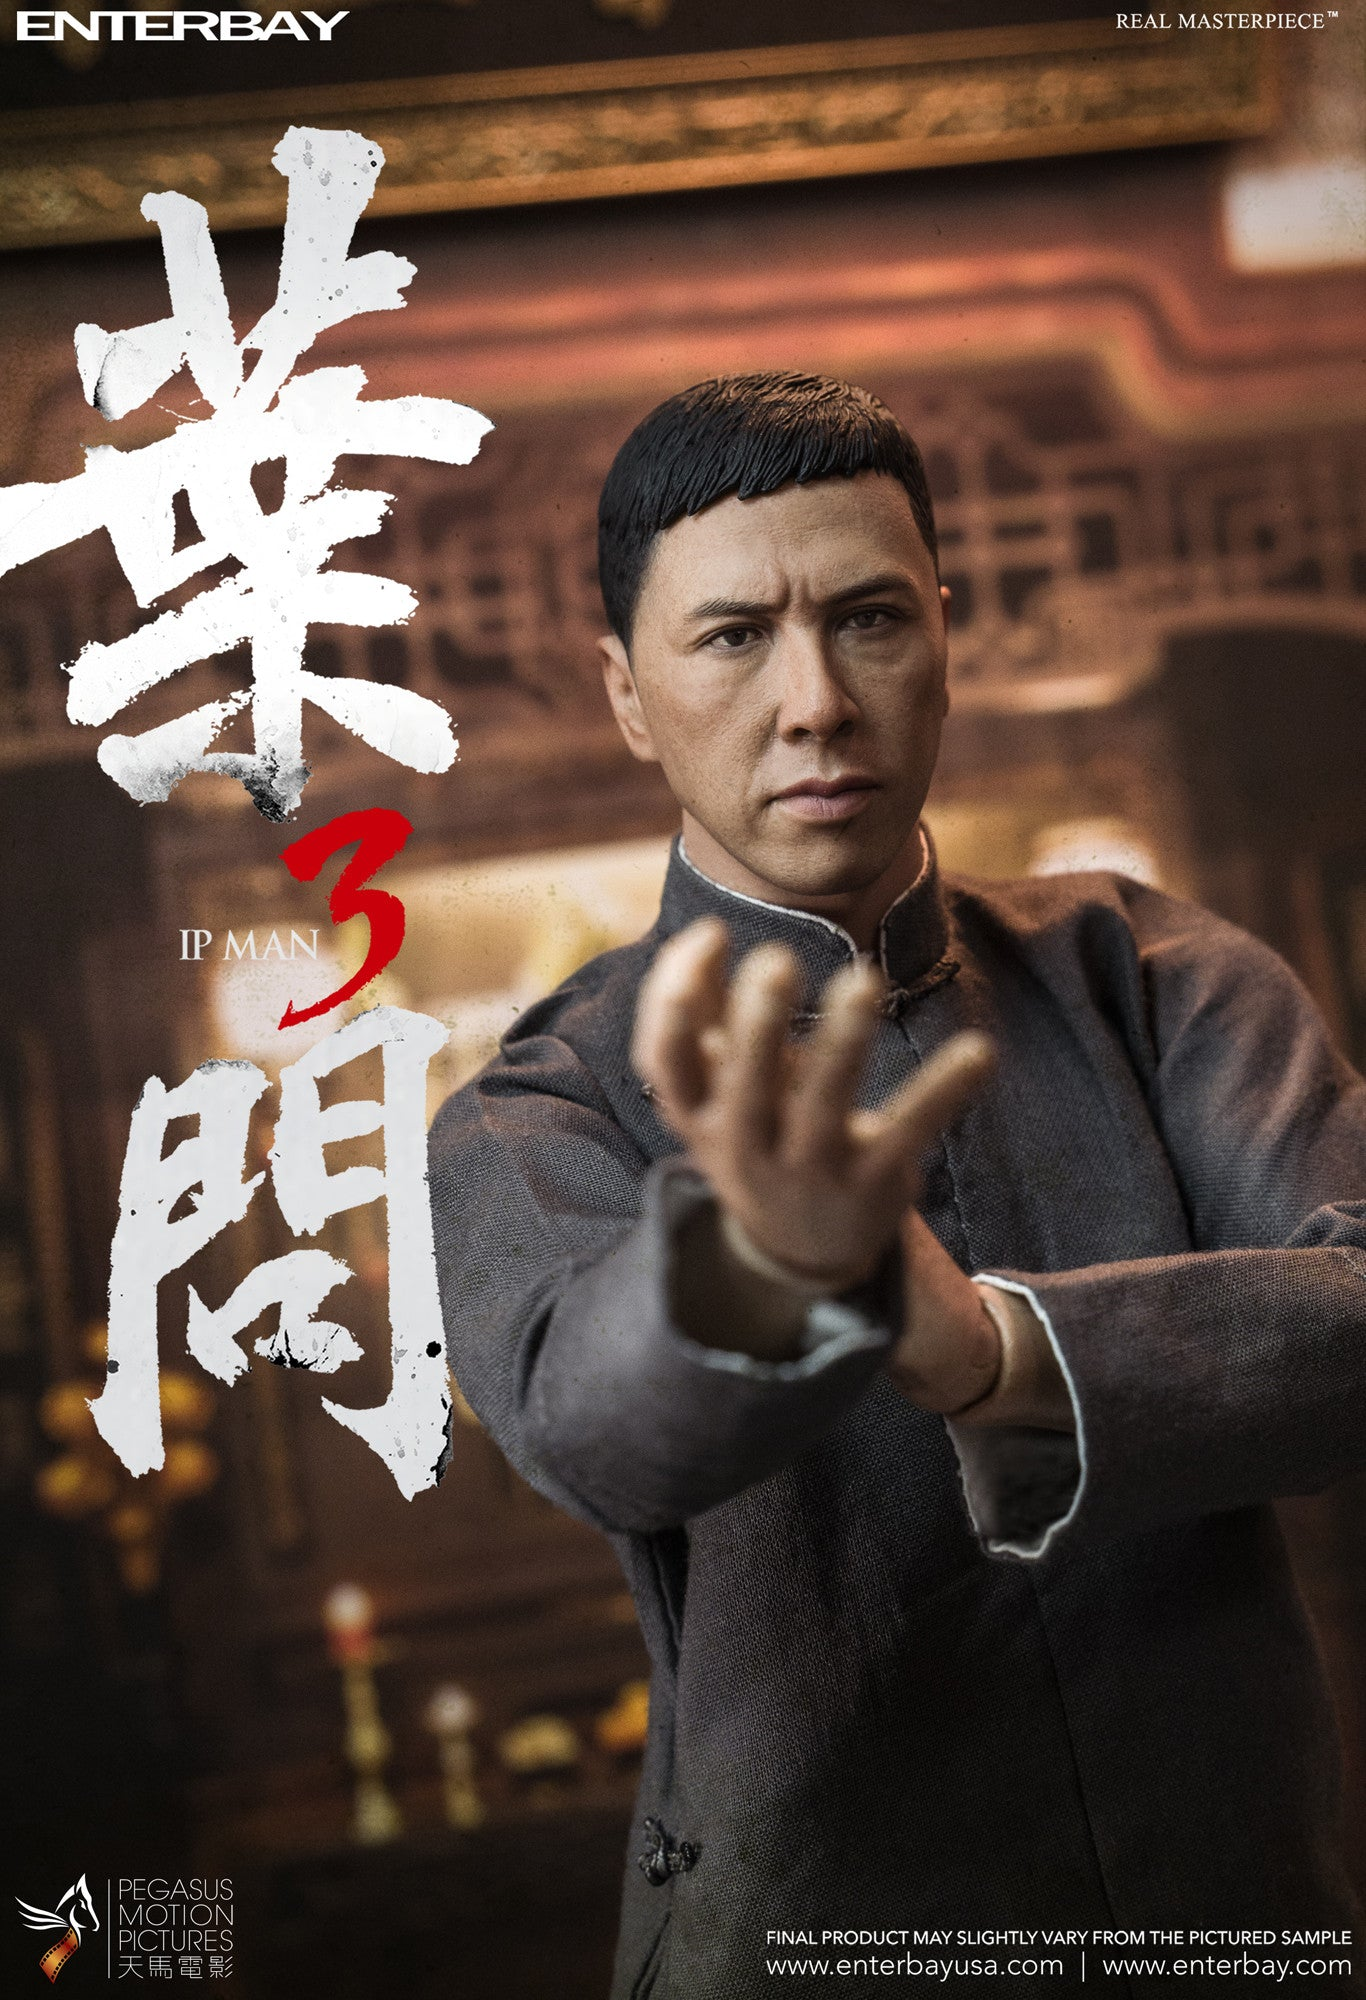 RM-1069 Real Masterpiece: Ip Man 3 Action Figure 1:6 Scale